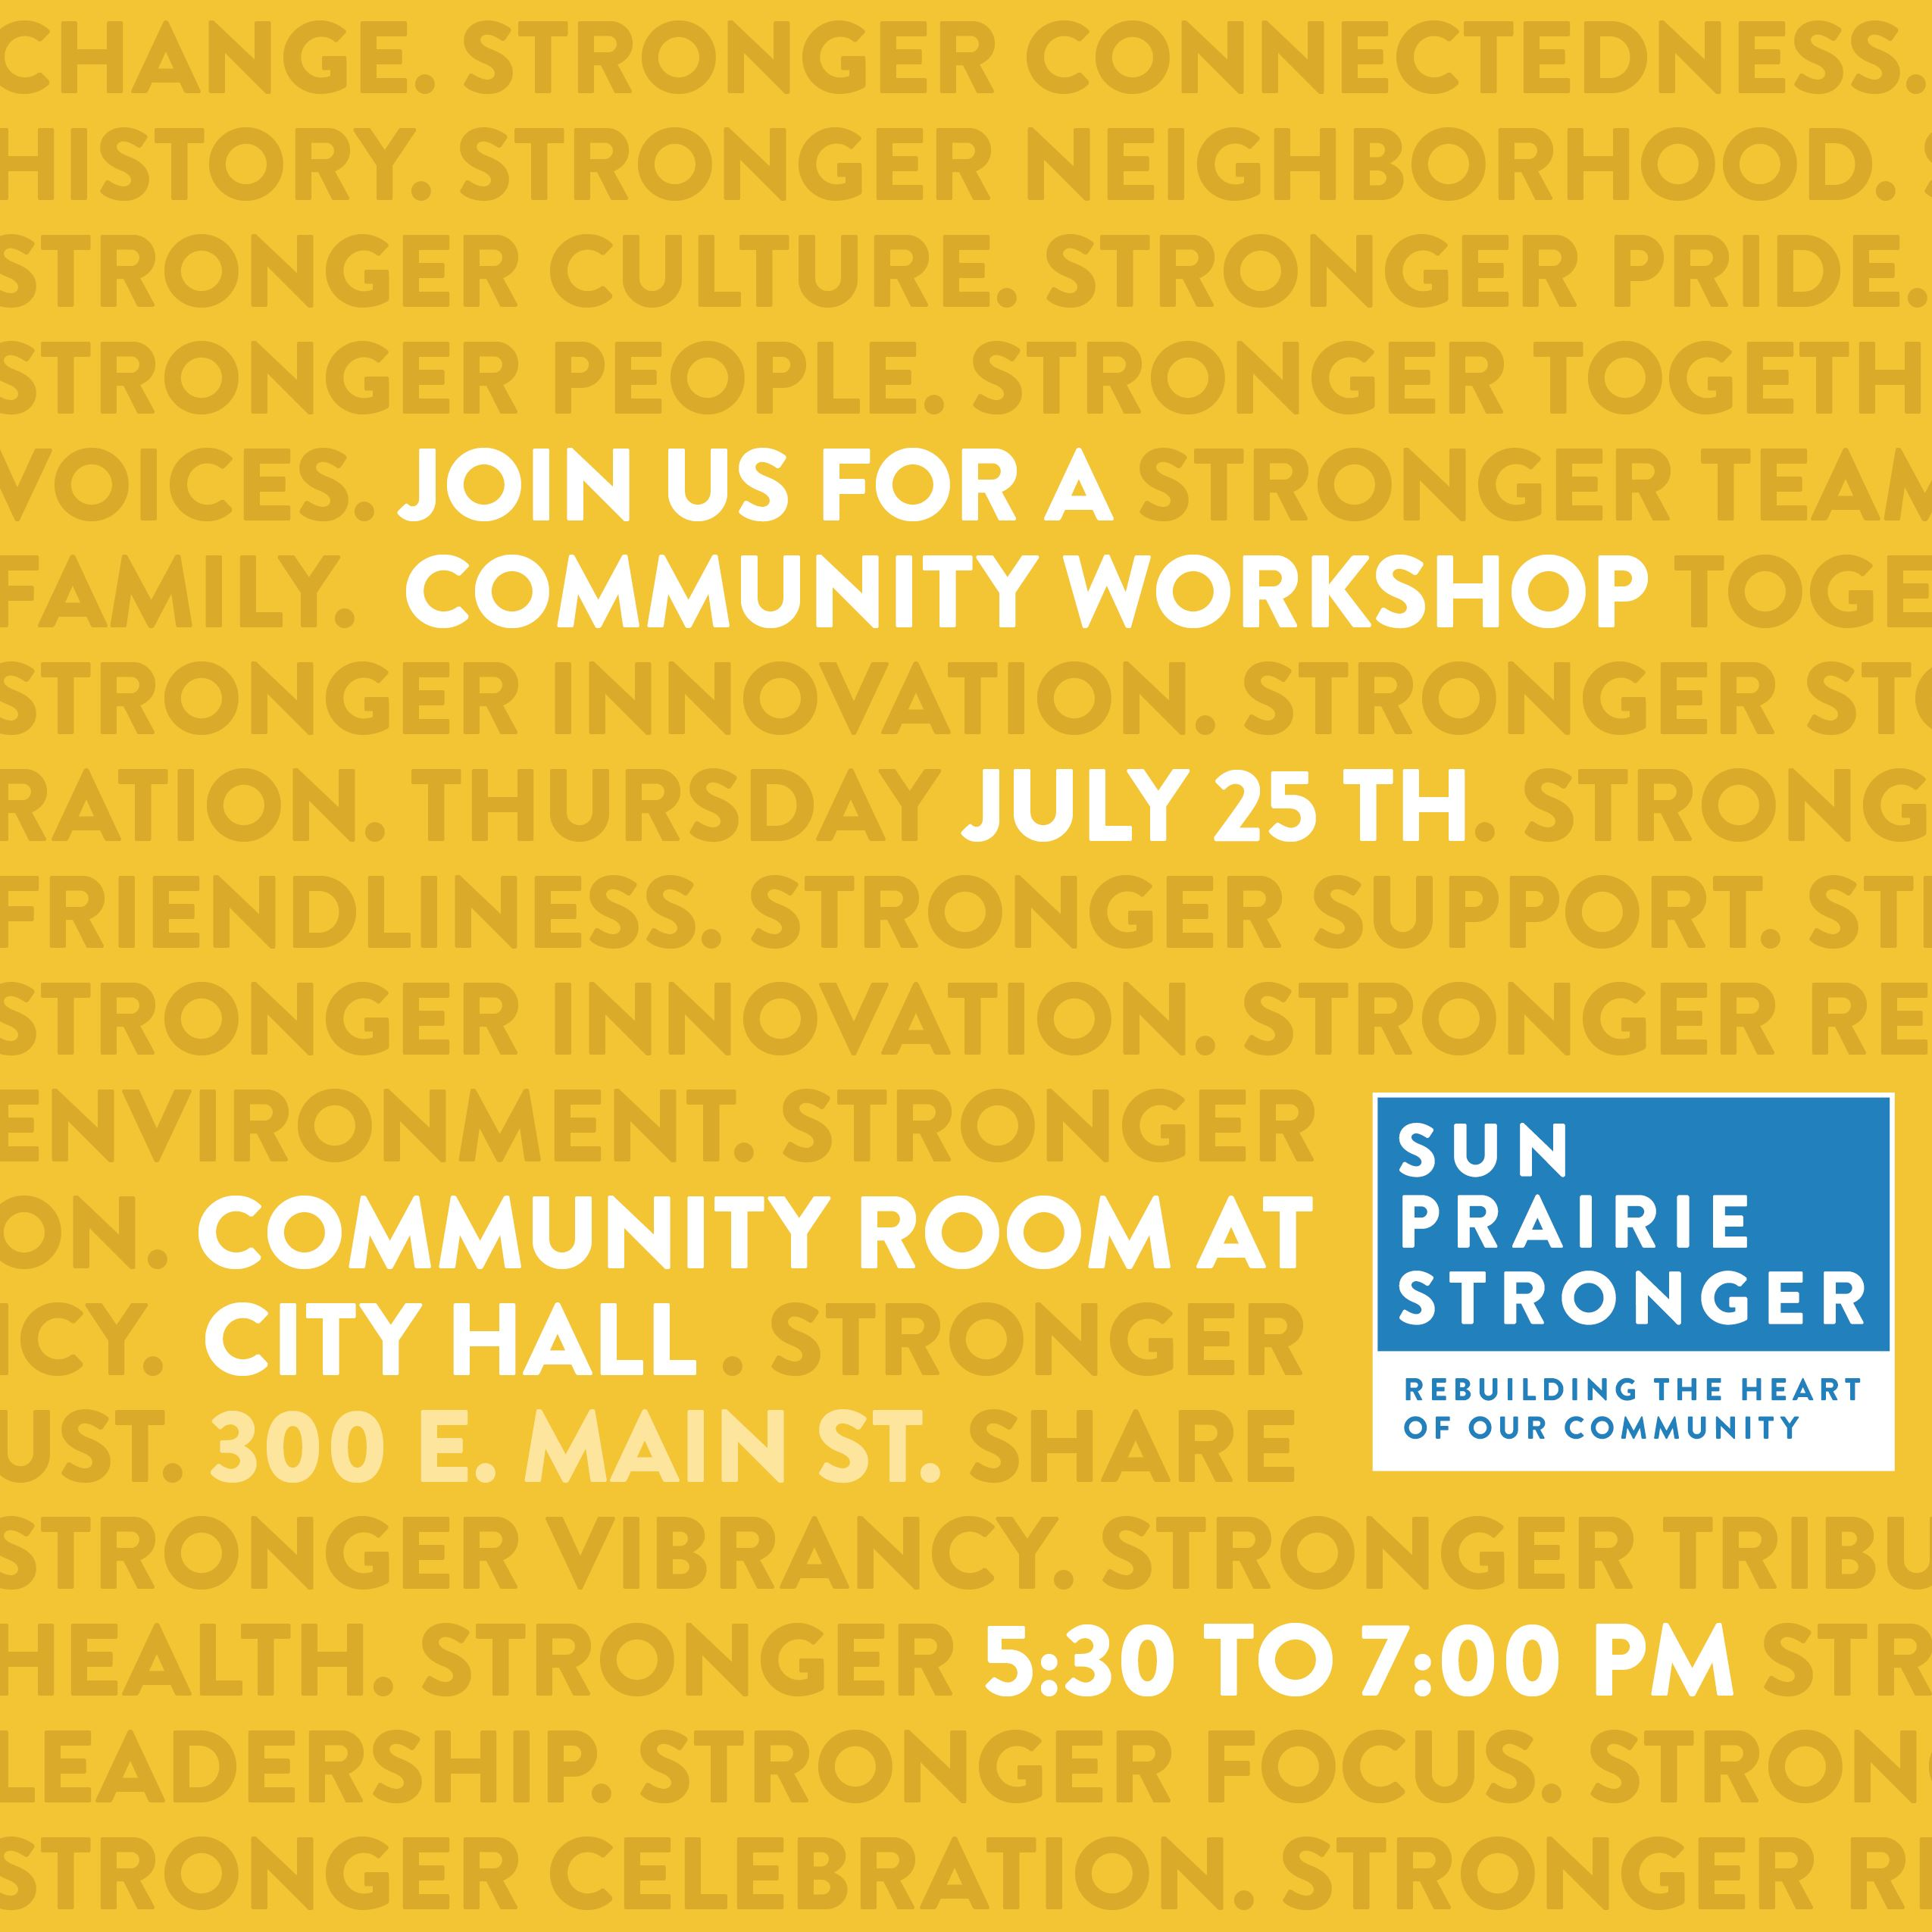 Community Workshop - June 25 from 5:30 - 7